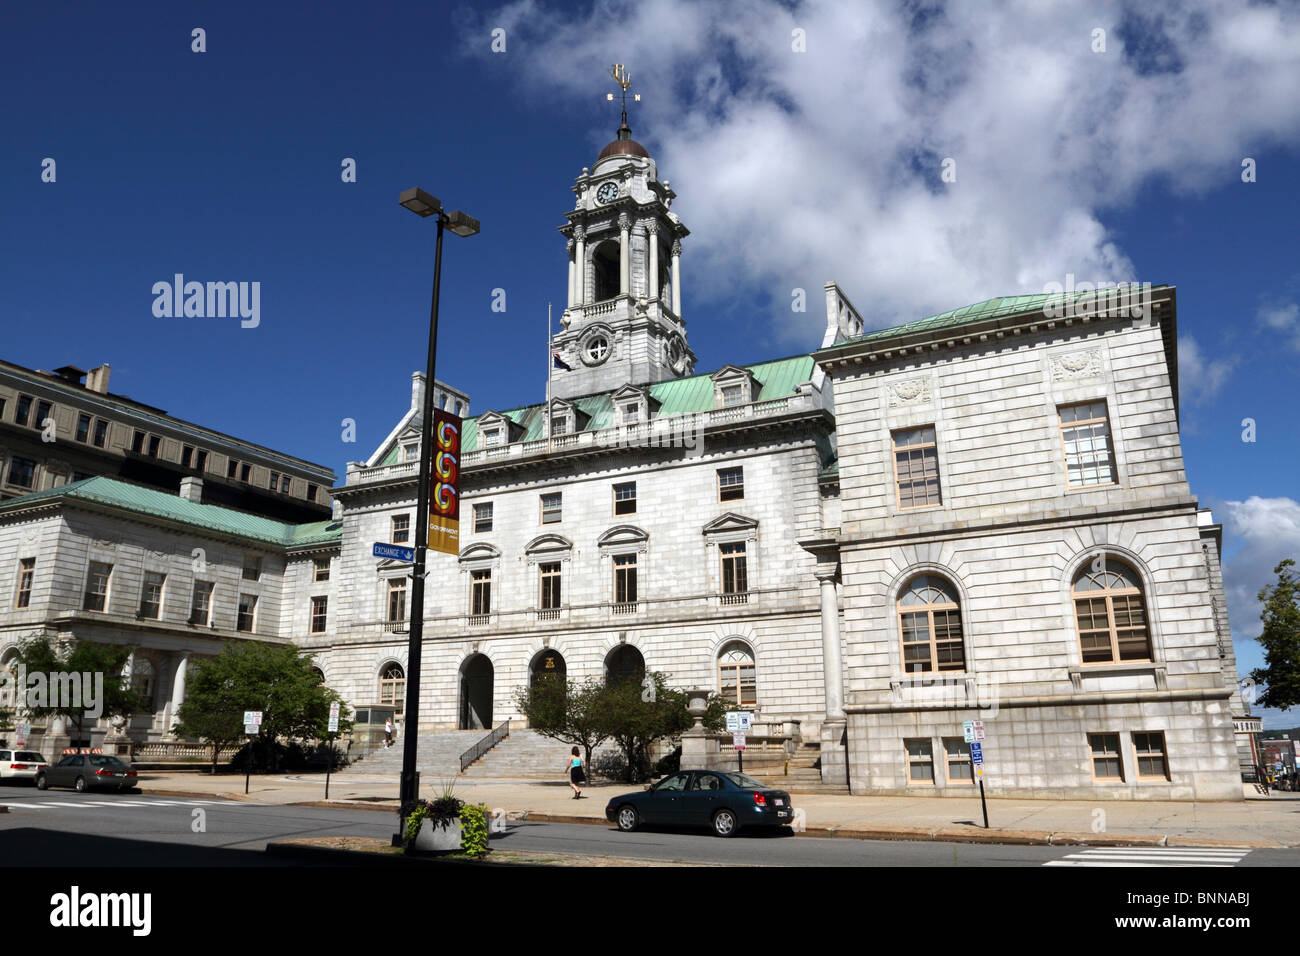 Portland City Hall, Portland, Maine, USA. The building was designed in the French Renaissance style. - Stock Image